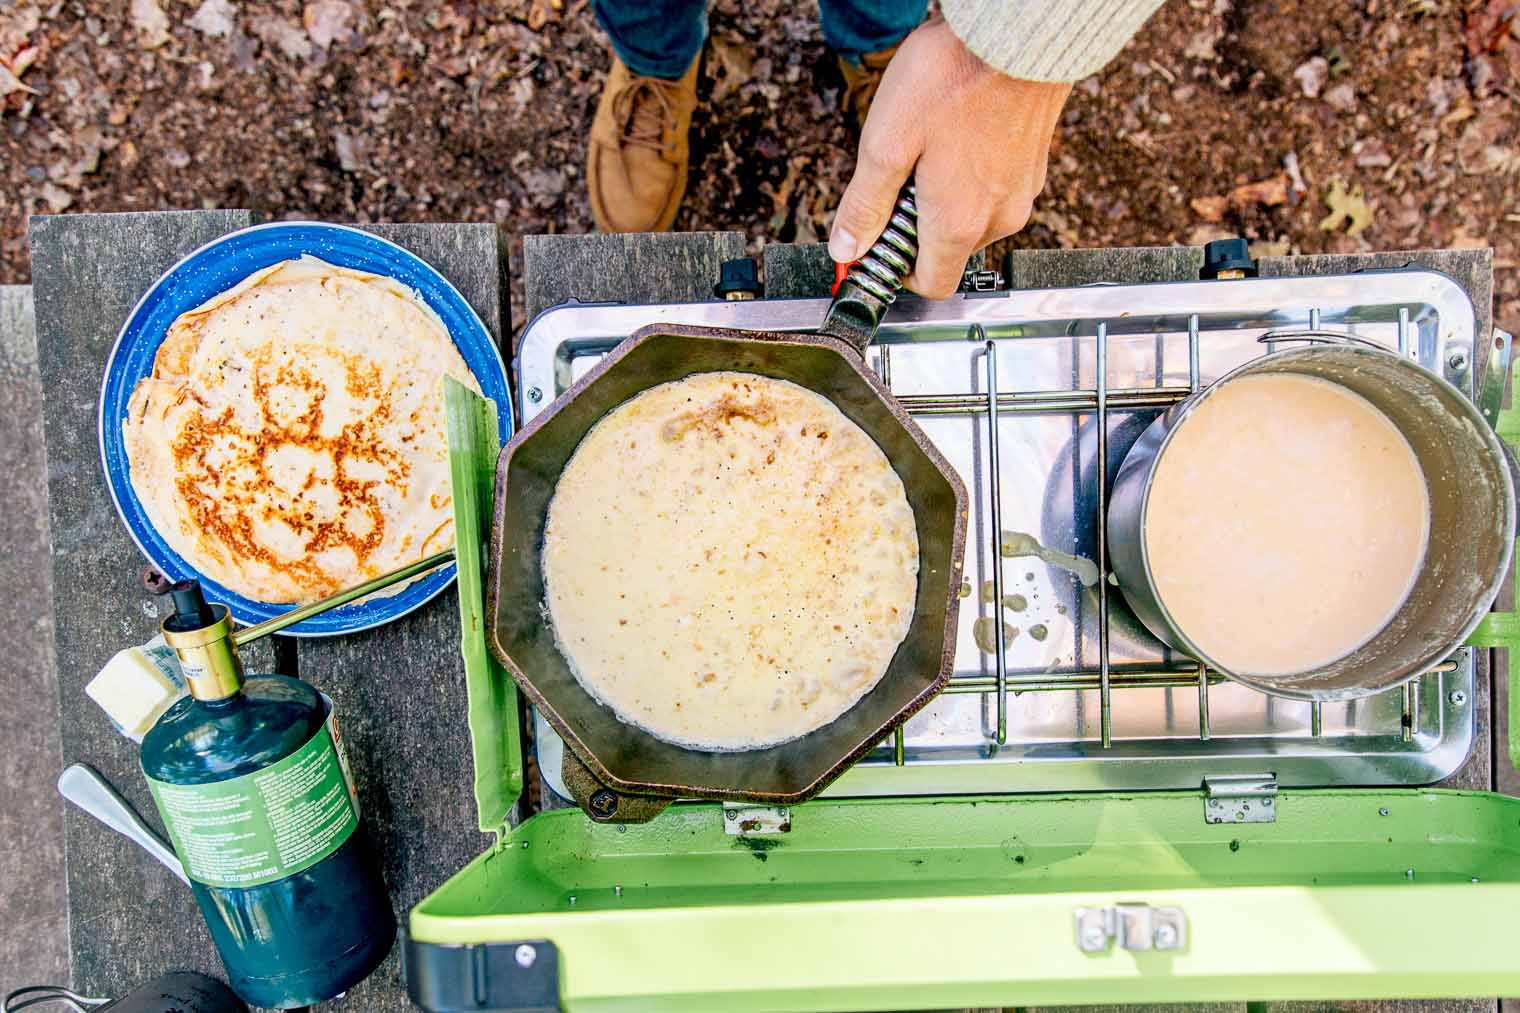 Ponnukokur are thin, crepe-like Icelandic pancakes. We made ours stuffed with fruit and skyr for a high protein breakfast while camping.